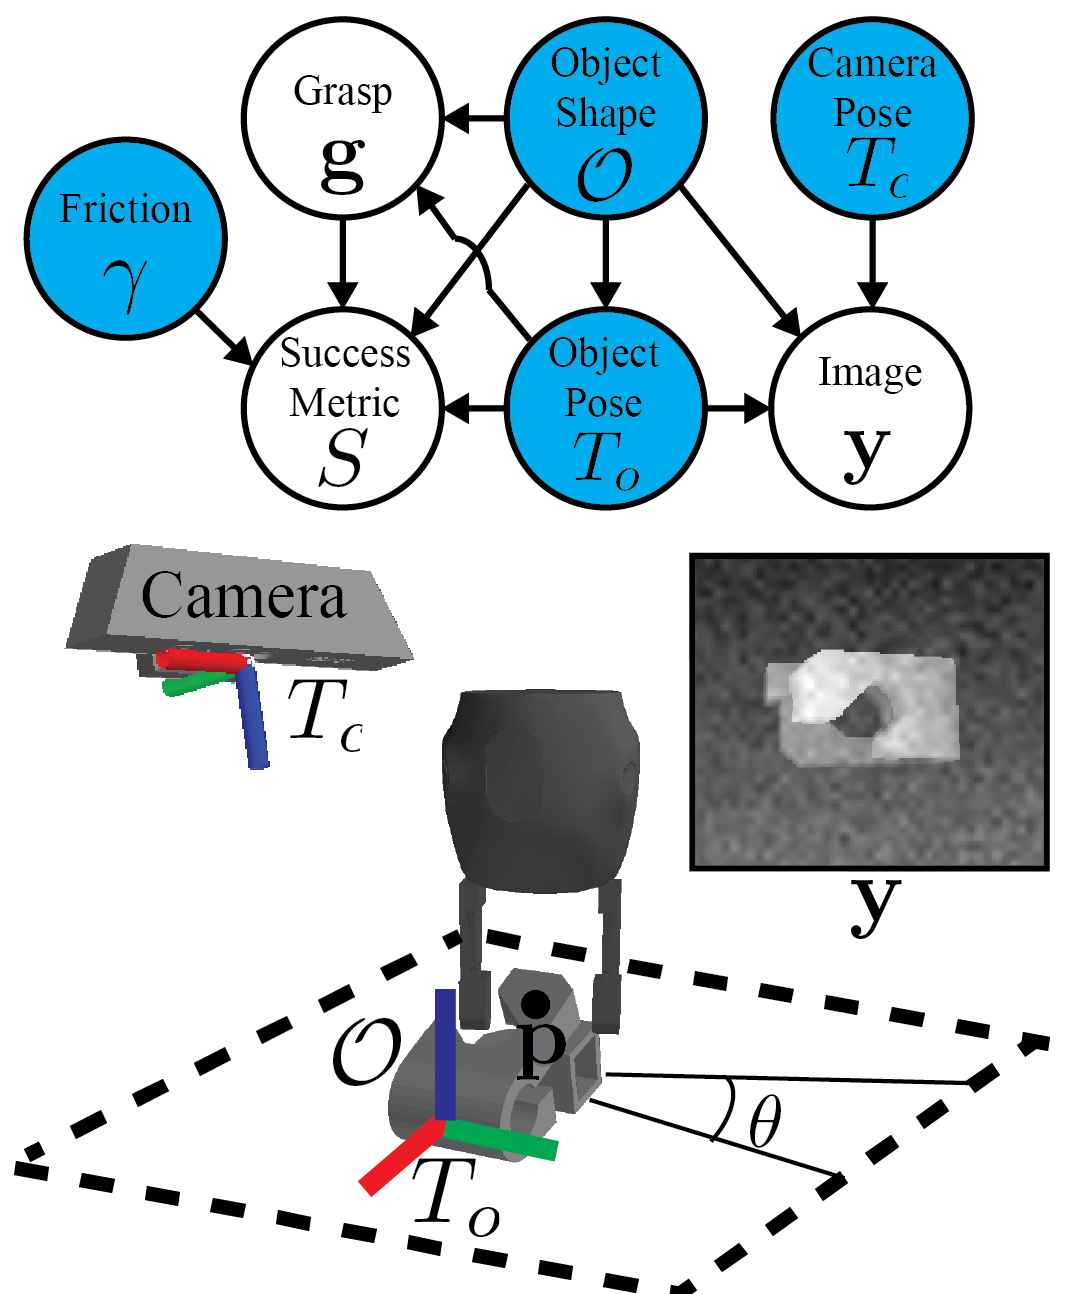 Graphical model for robust parallel-jaw grasping of objects on a table surface based on point clouds. Blue nodes are variables included in the state representation. Object shapes